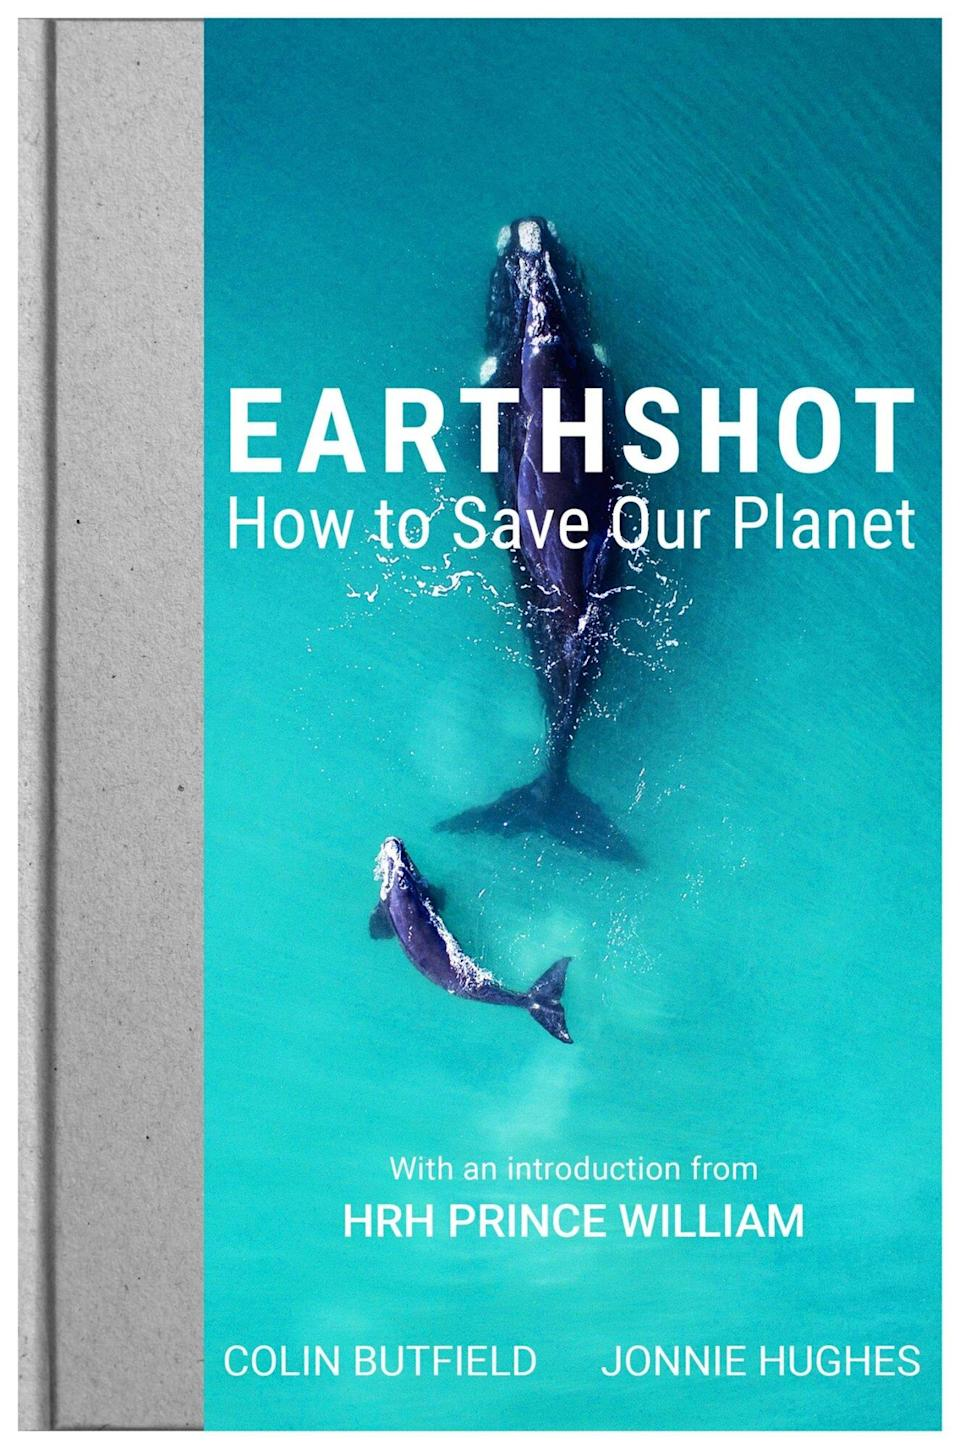 Earthshot - How to Save our Planet